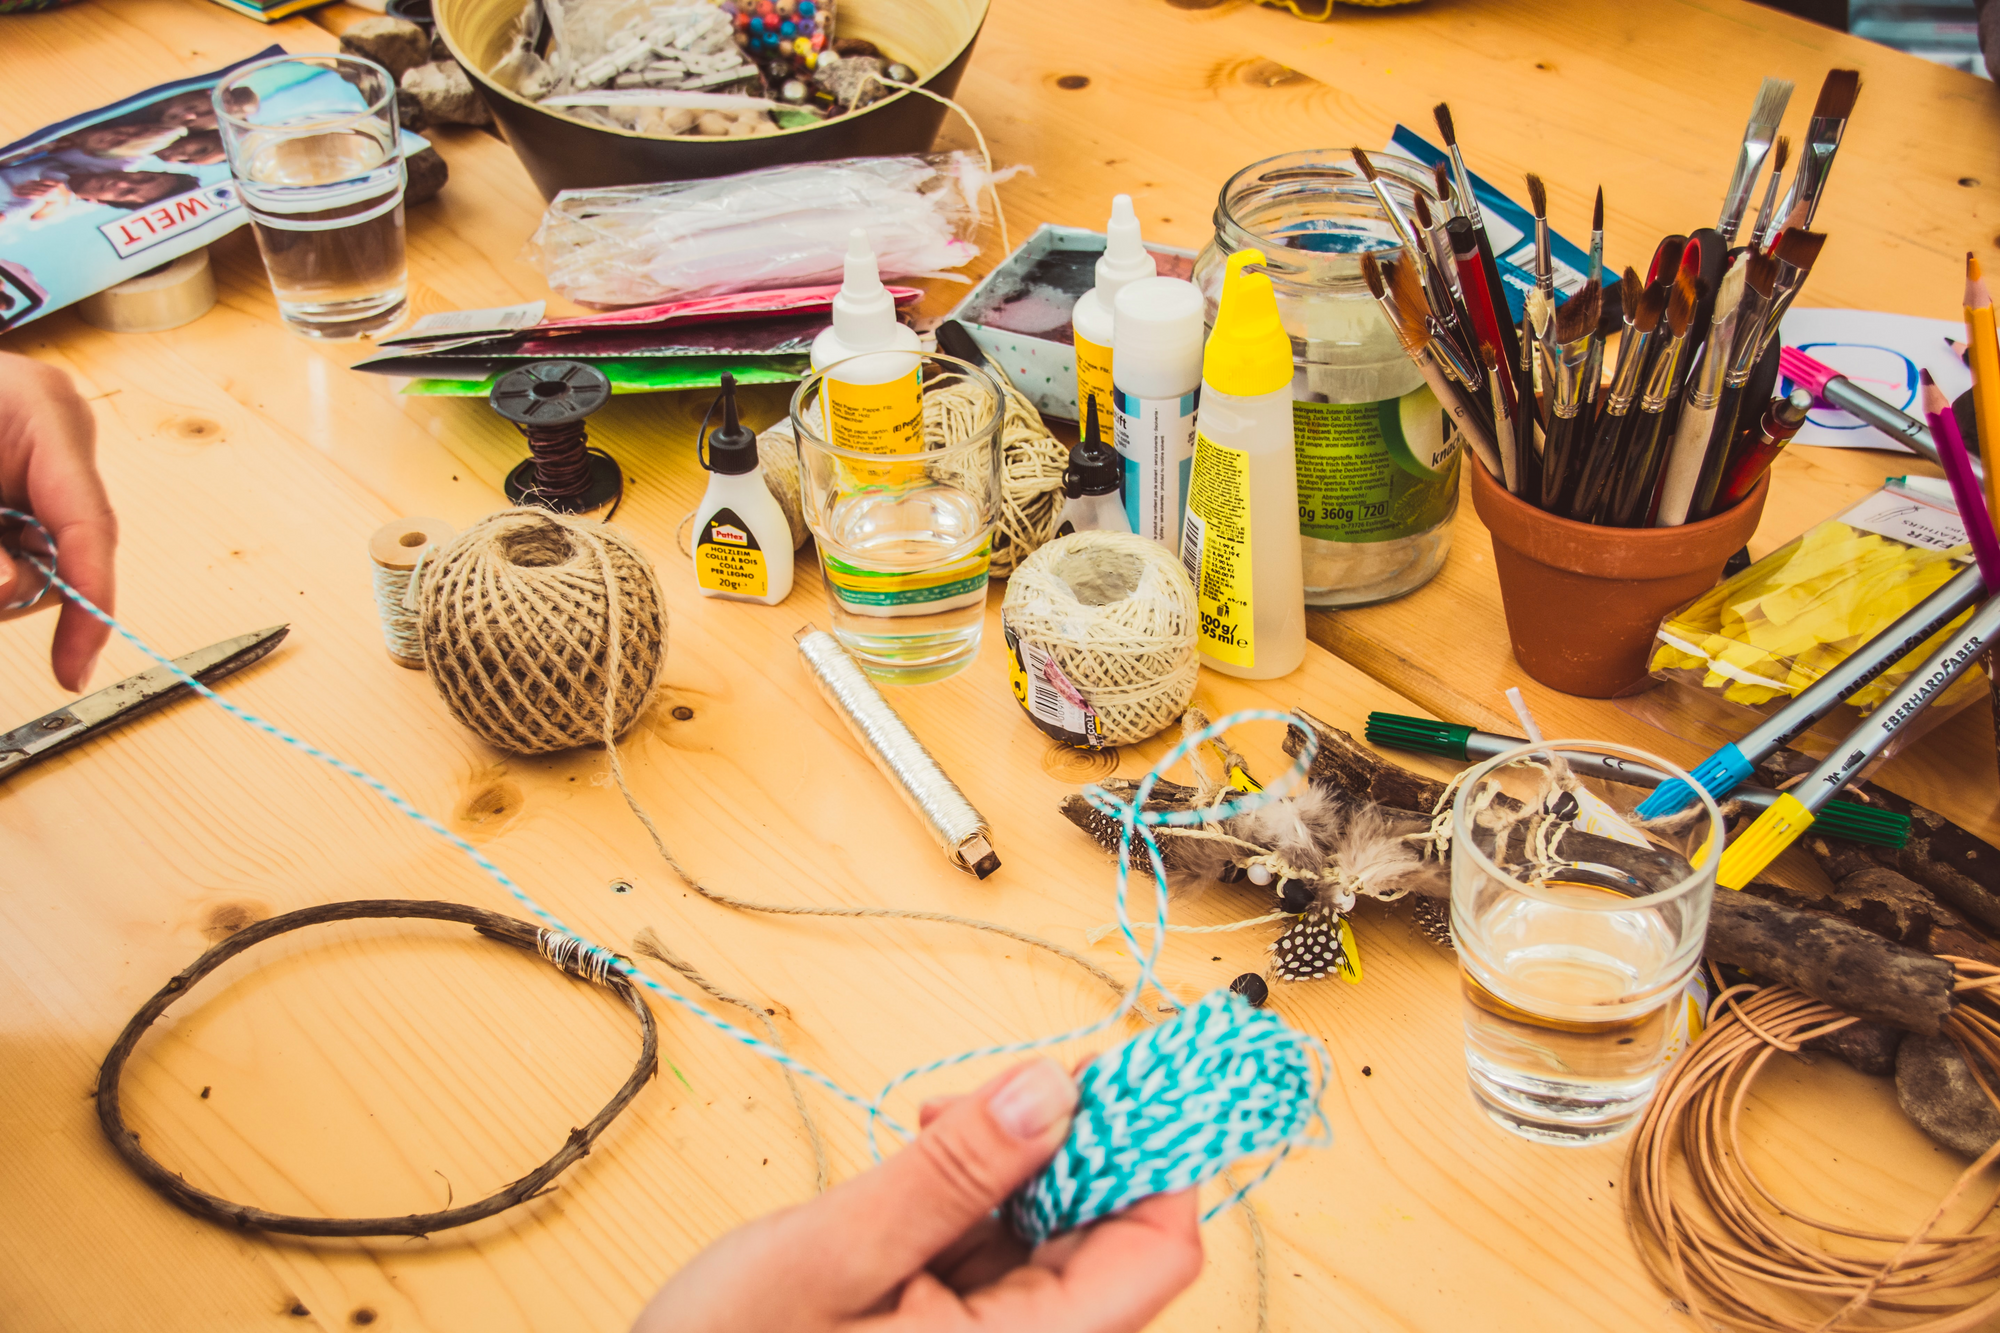 DIY projects as a me time activity can help you to take your mind off your work